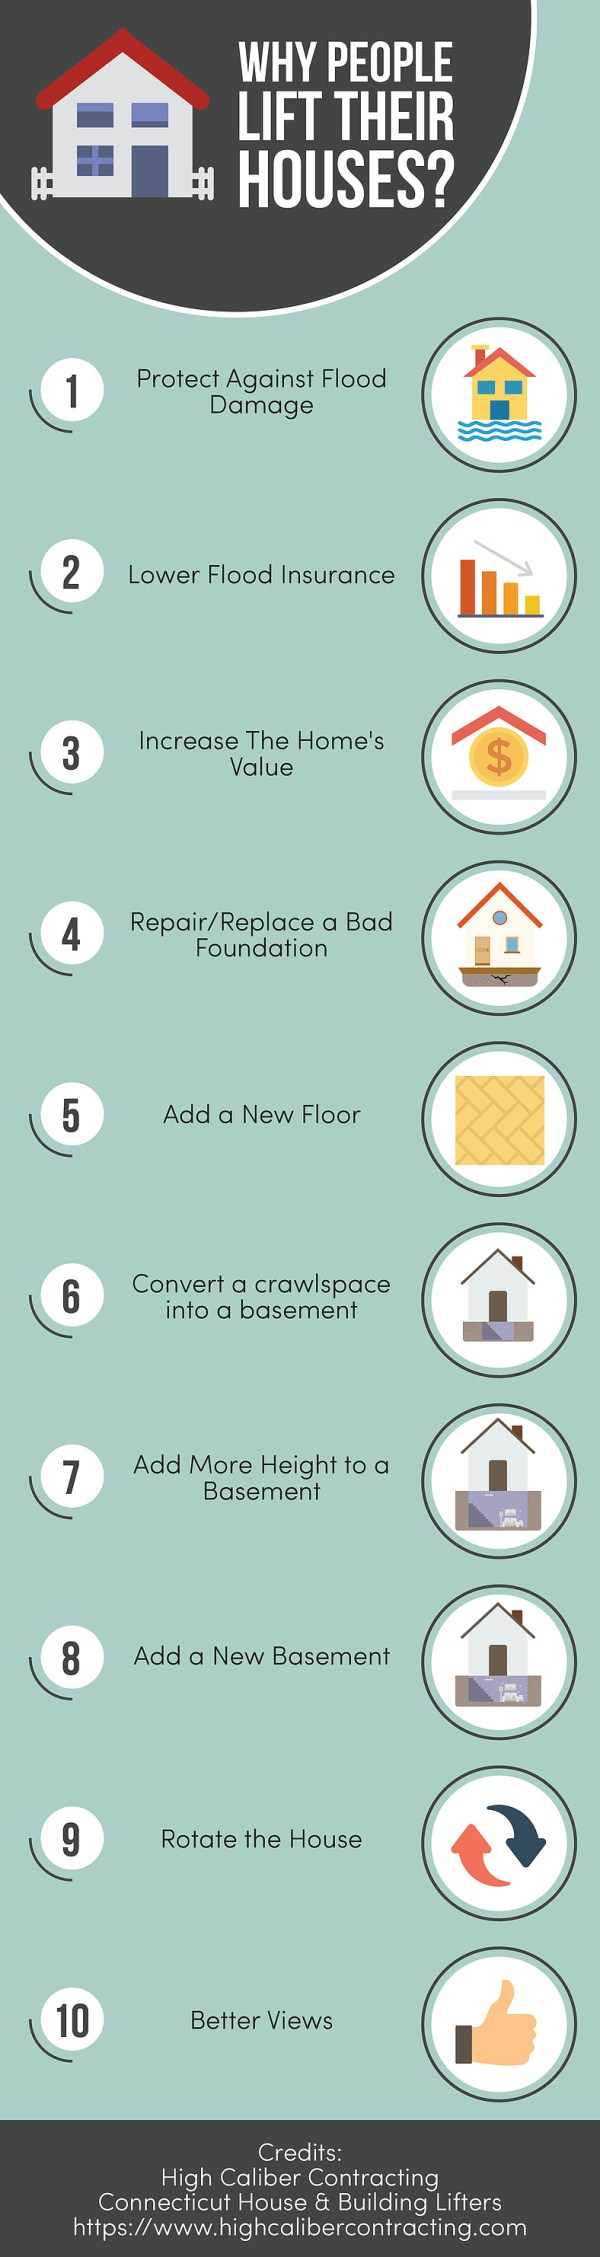 Reasons People Lift Their Homes-infographic-lkrllc